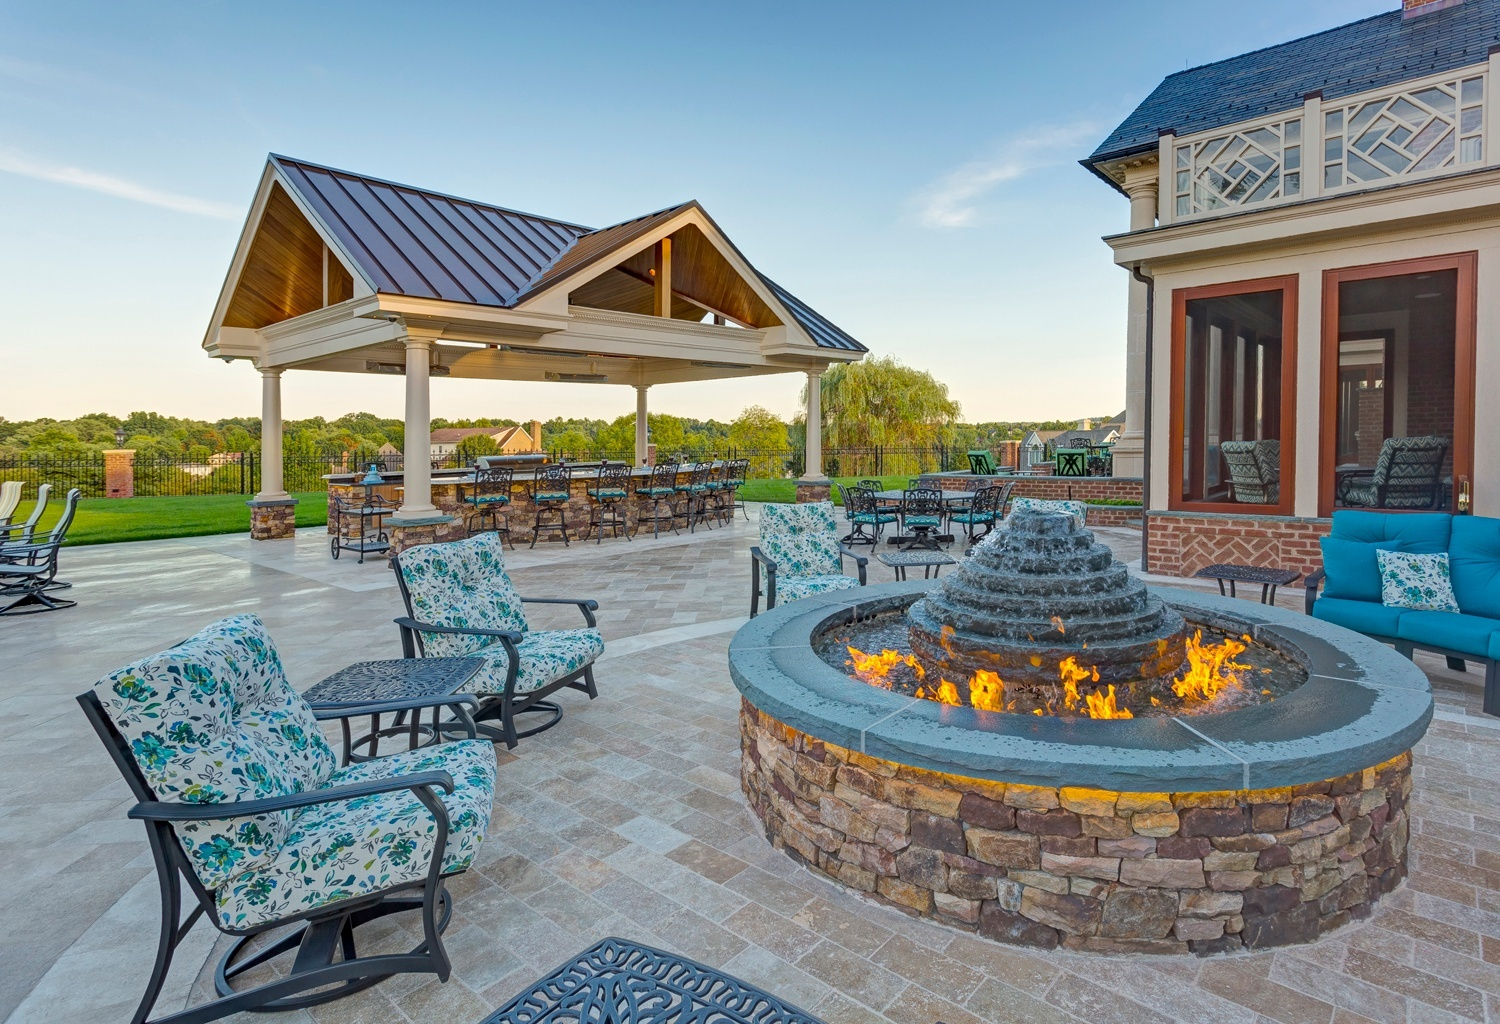 Patio fire pit fountain & dining area